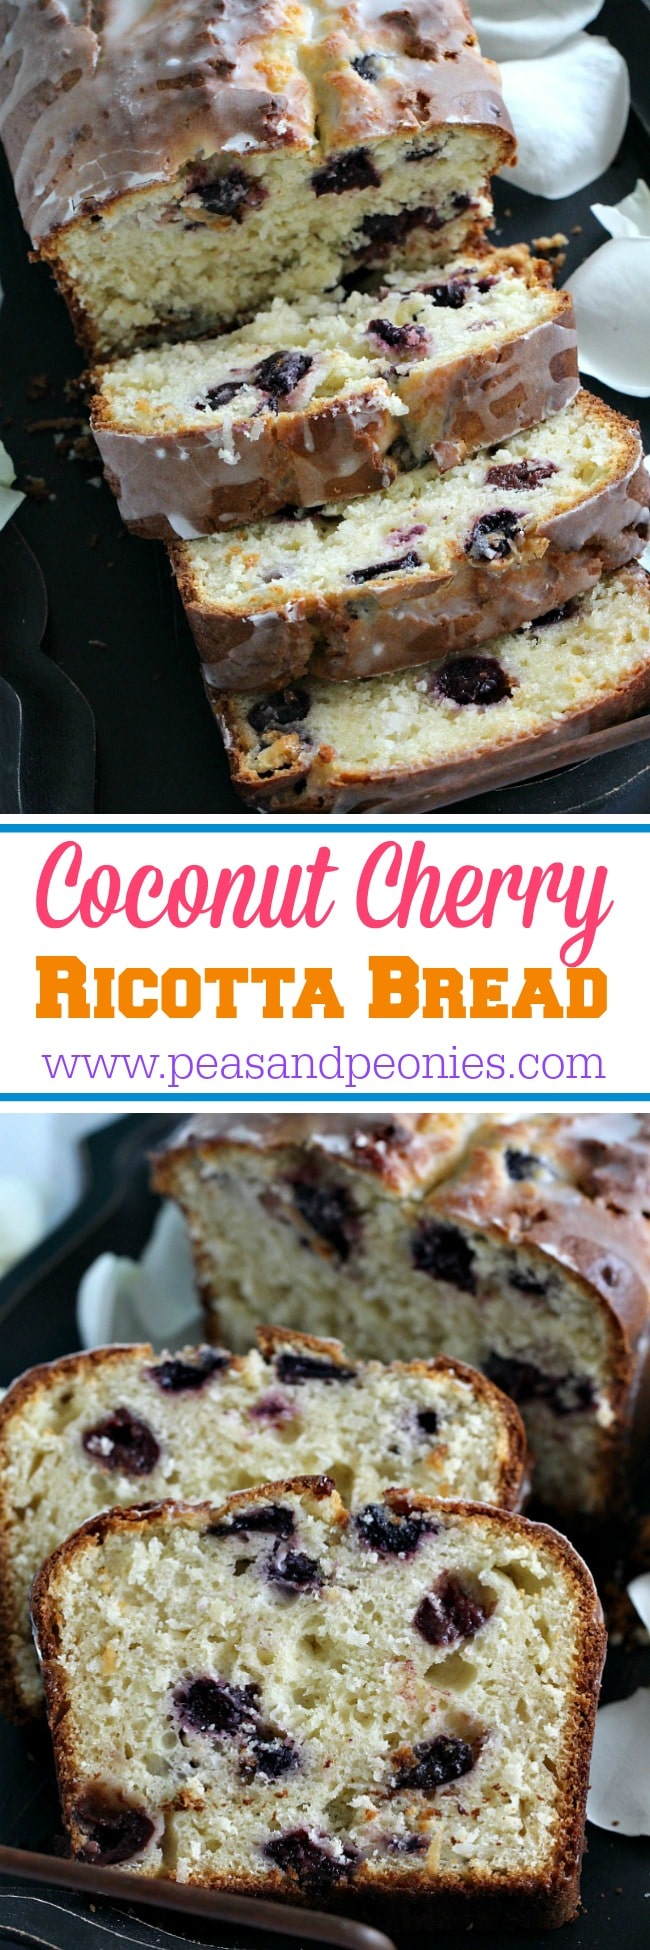 Coconut cherry ricotta bread that is moist and tender, very easy to make, loaded with sweet cherries and topped with a lemon glaze.